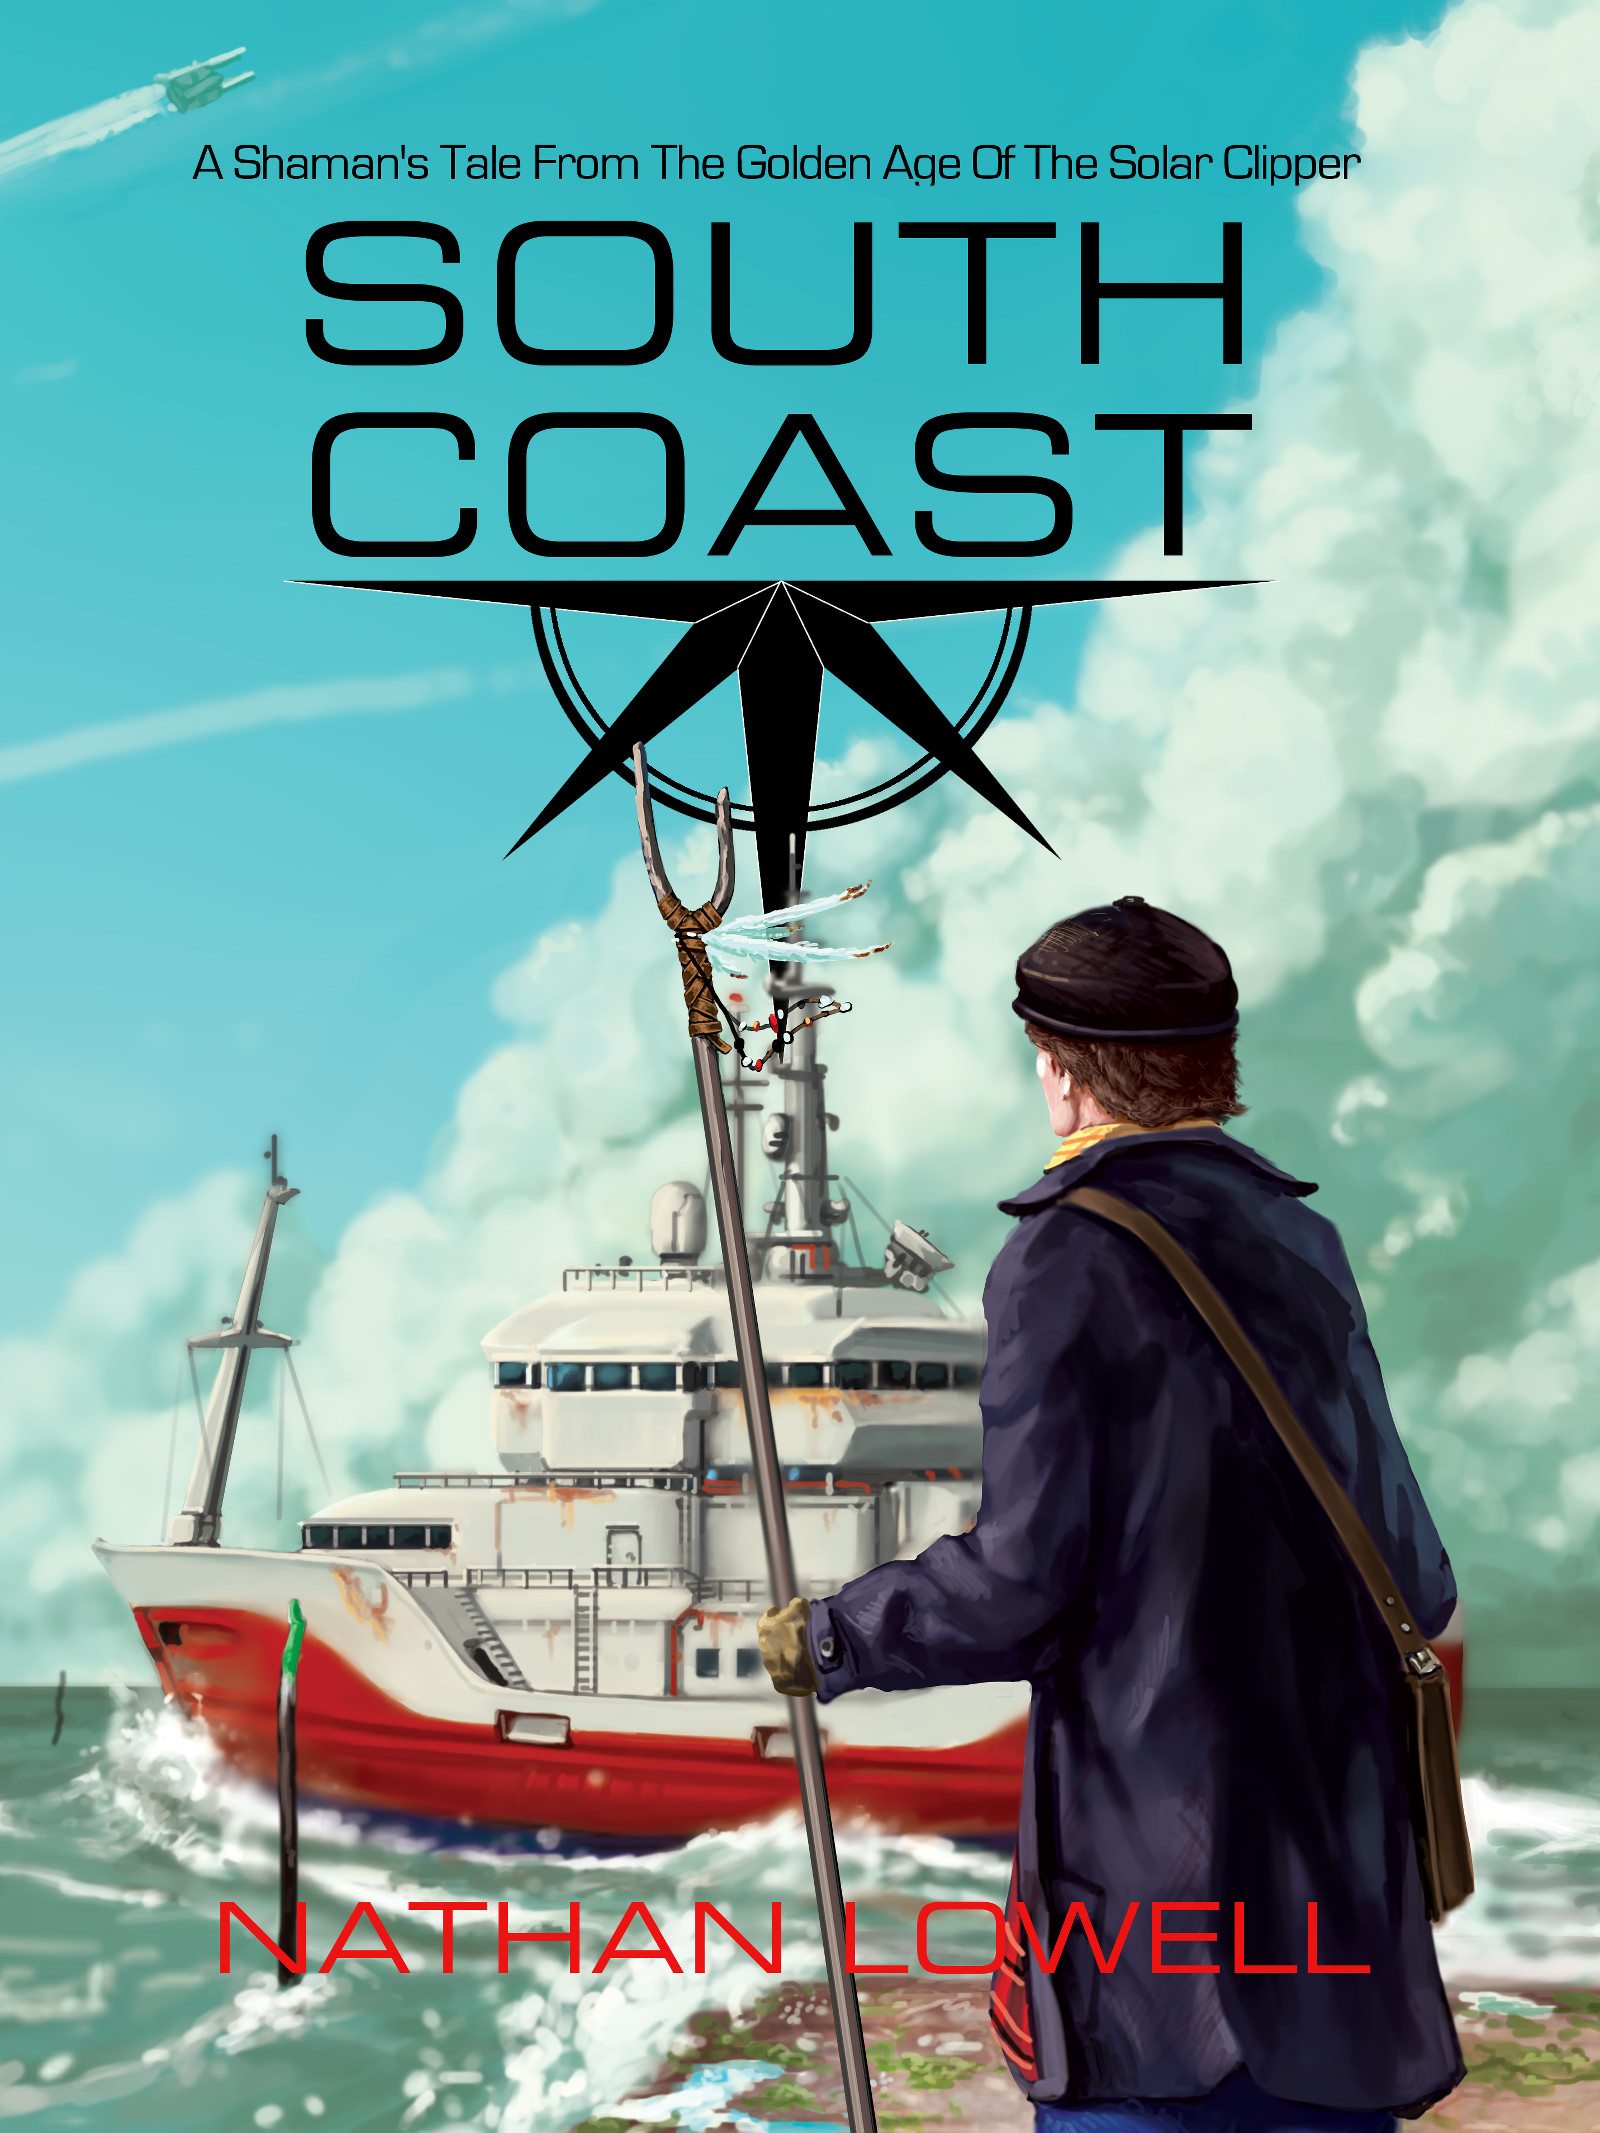 South Coast @ Podiobooks.com